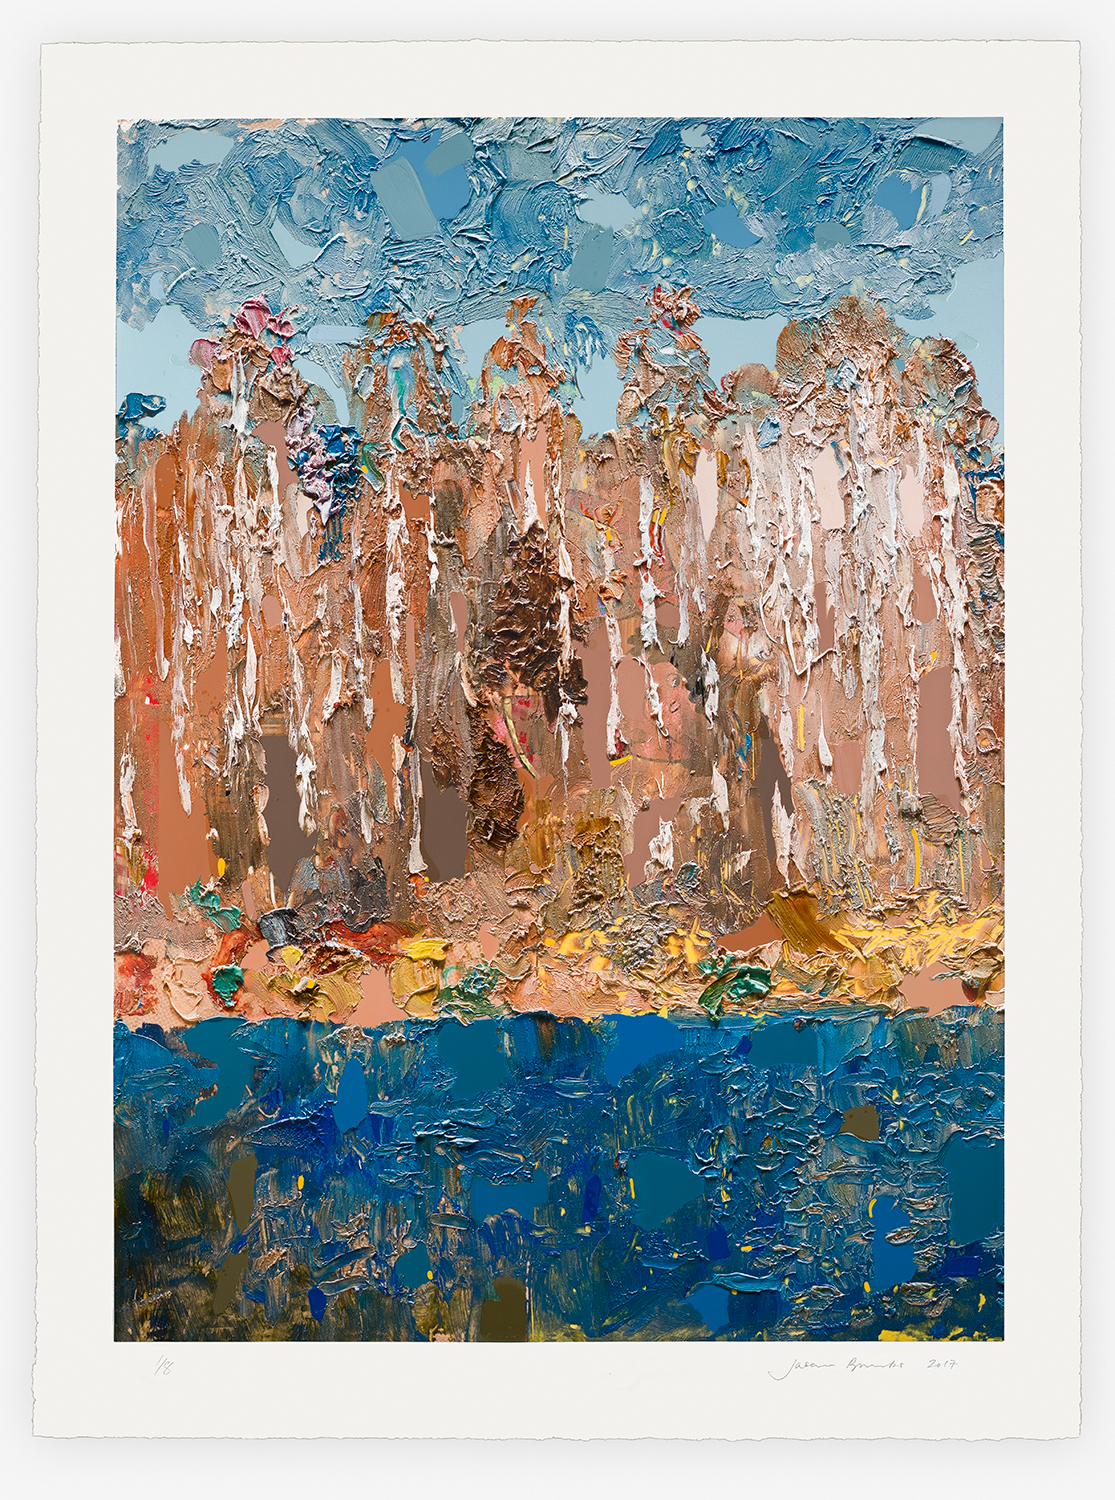 Brooks_Instinct of hope, 2018, print, 48 x 110 cm